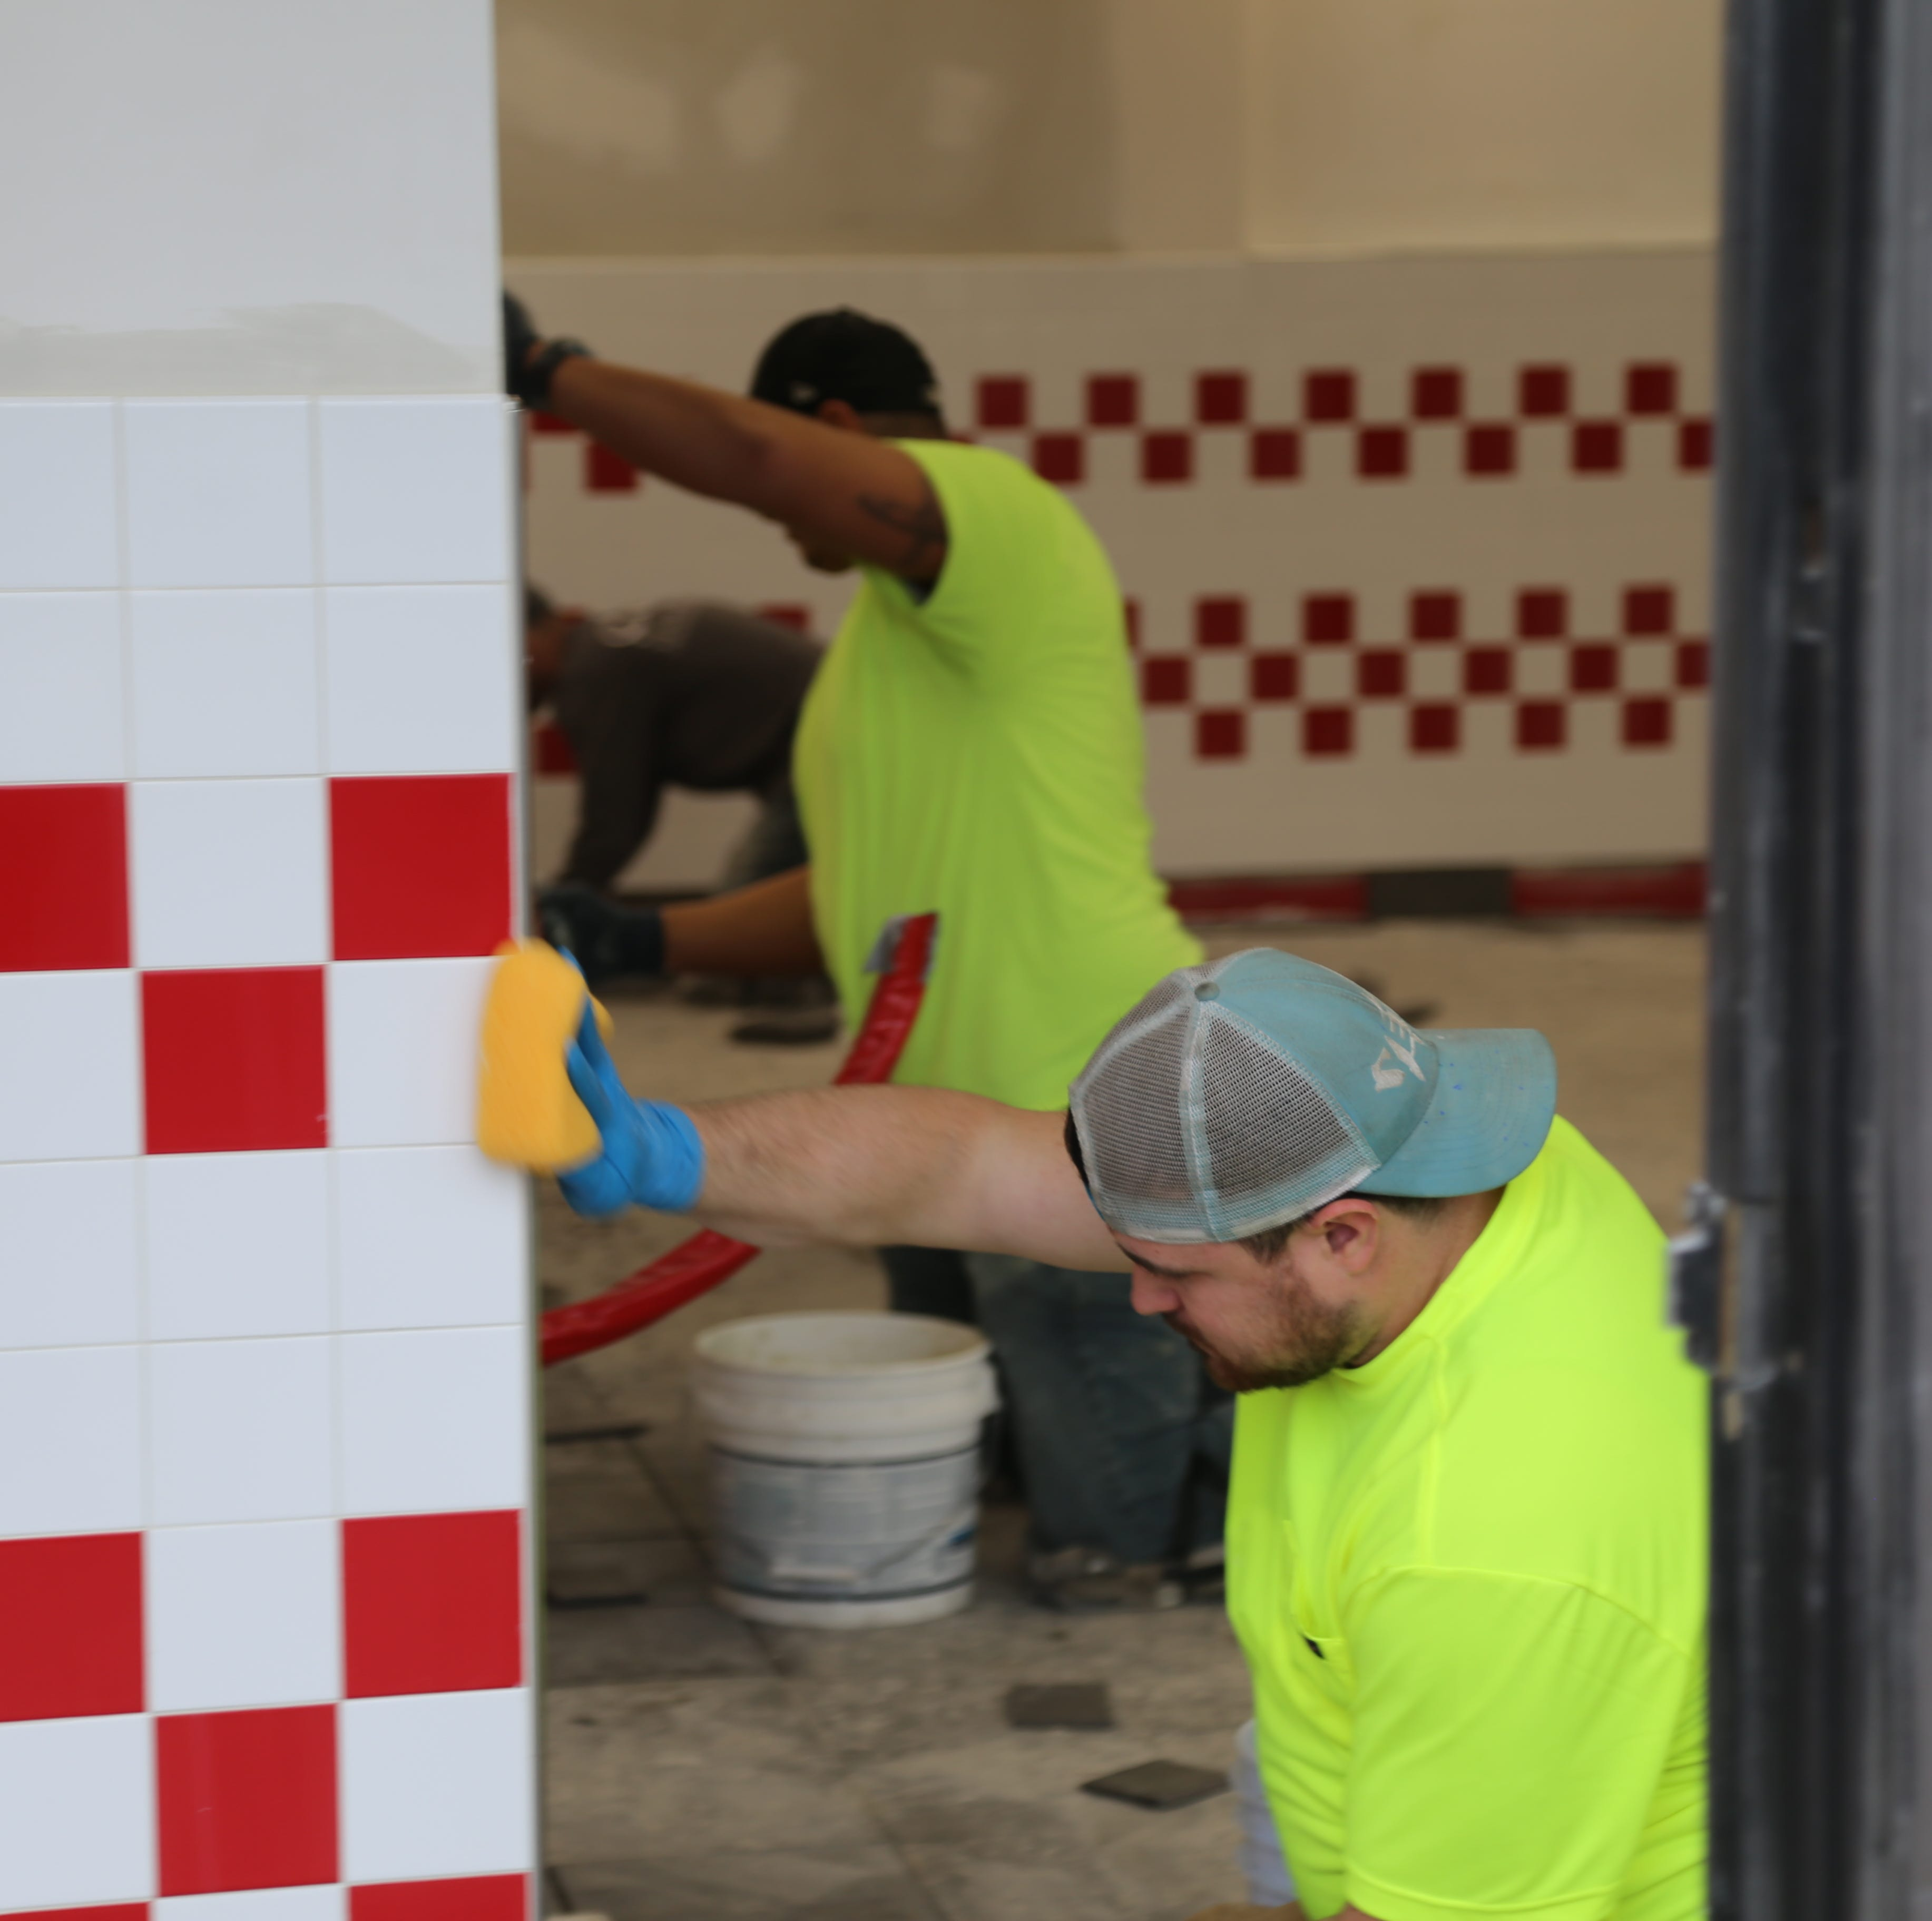 Five Guys Burgers & Fries in Ithaca being renovated